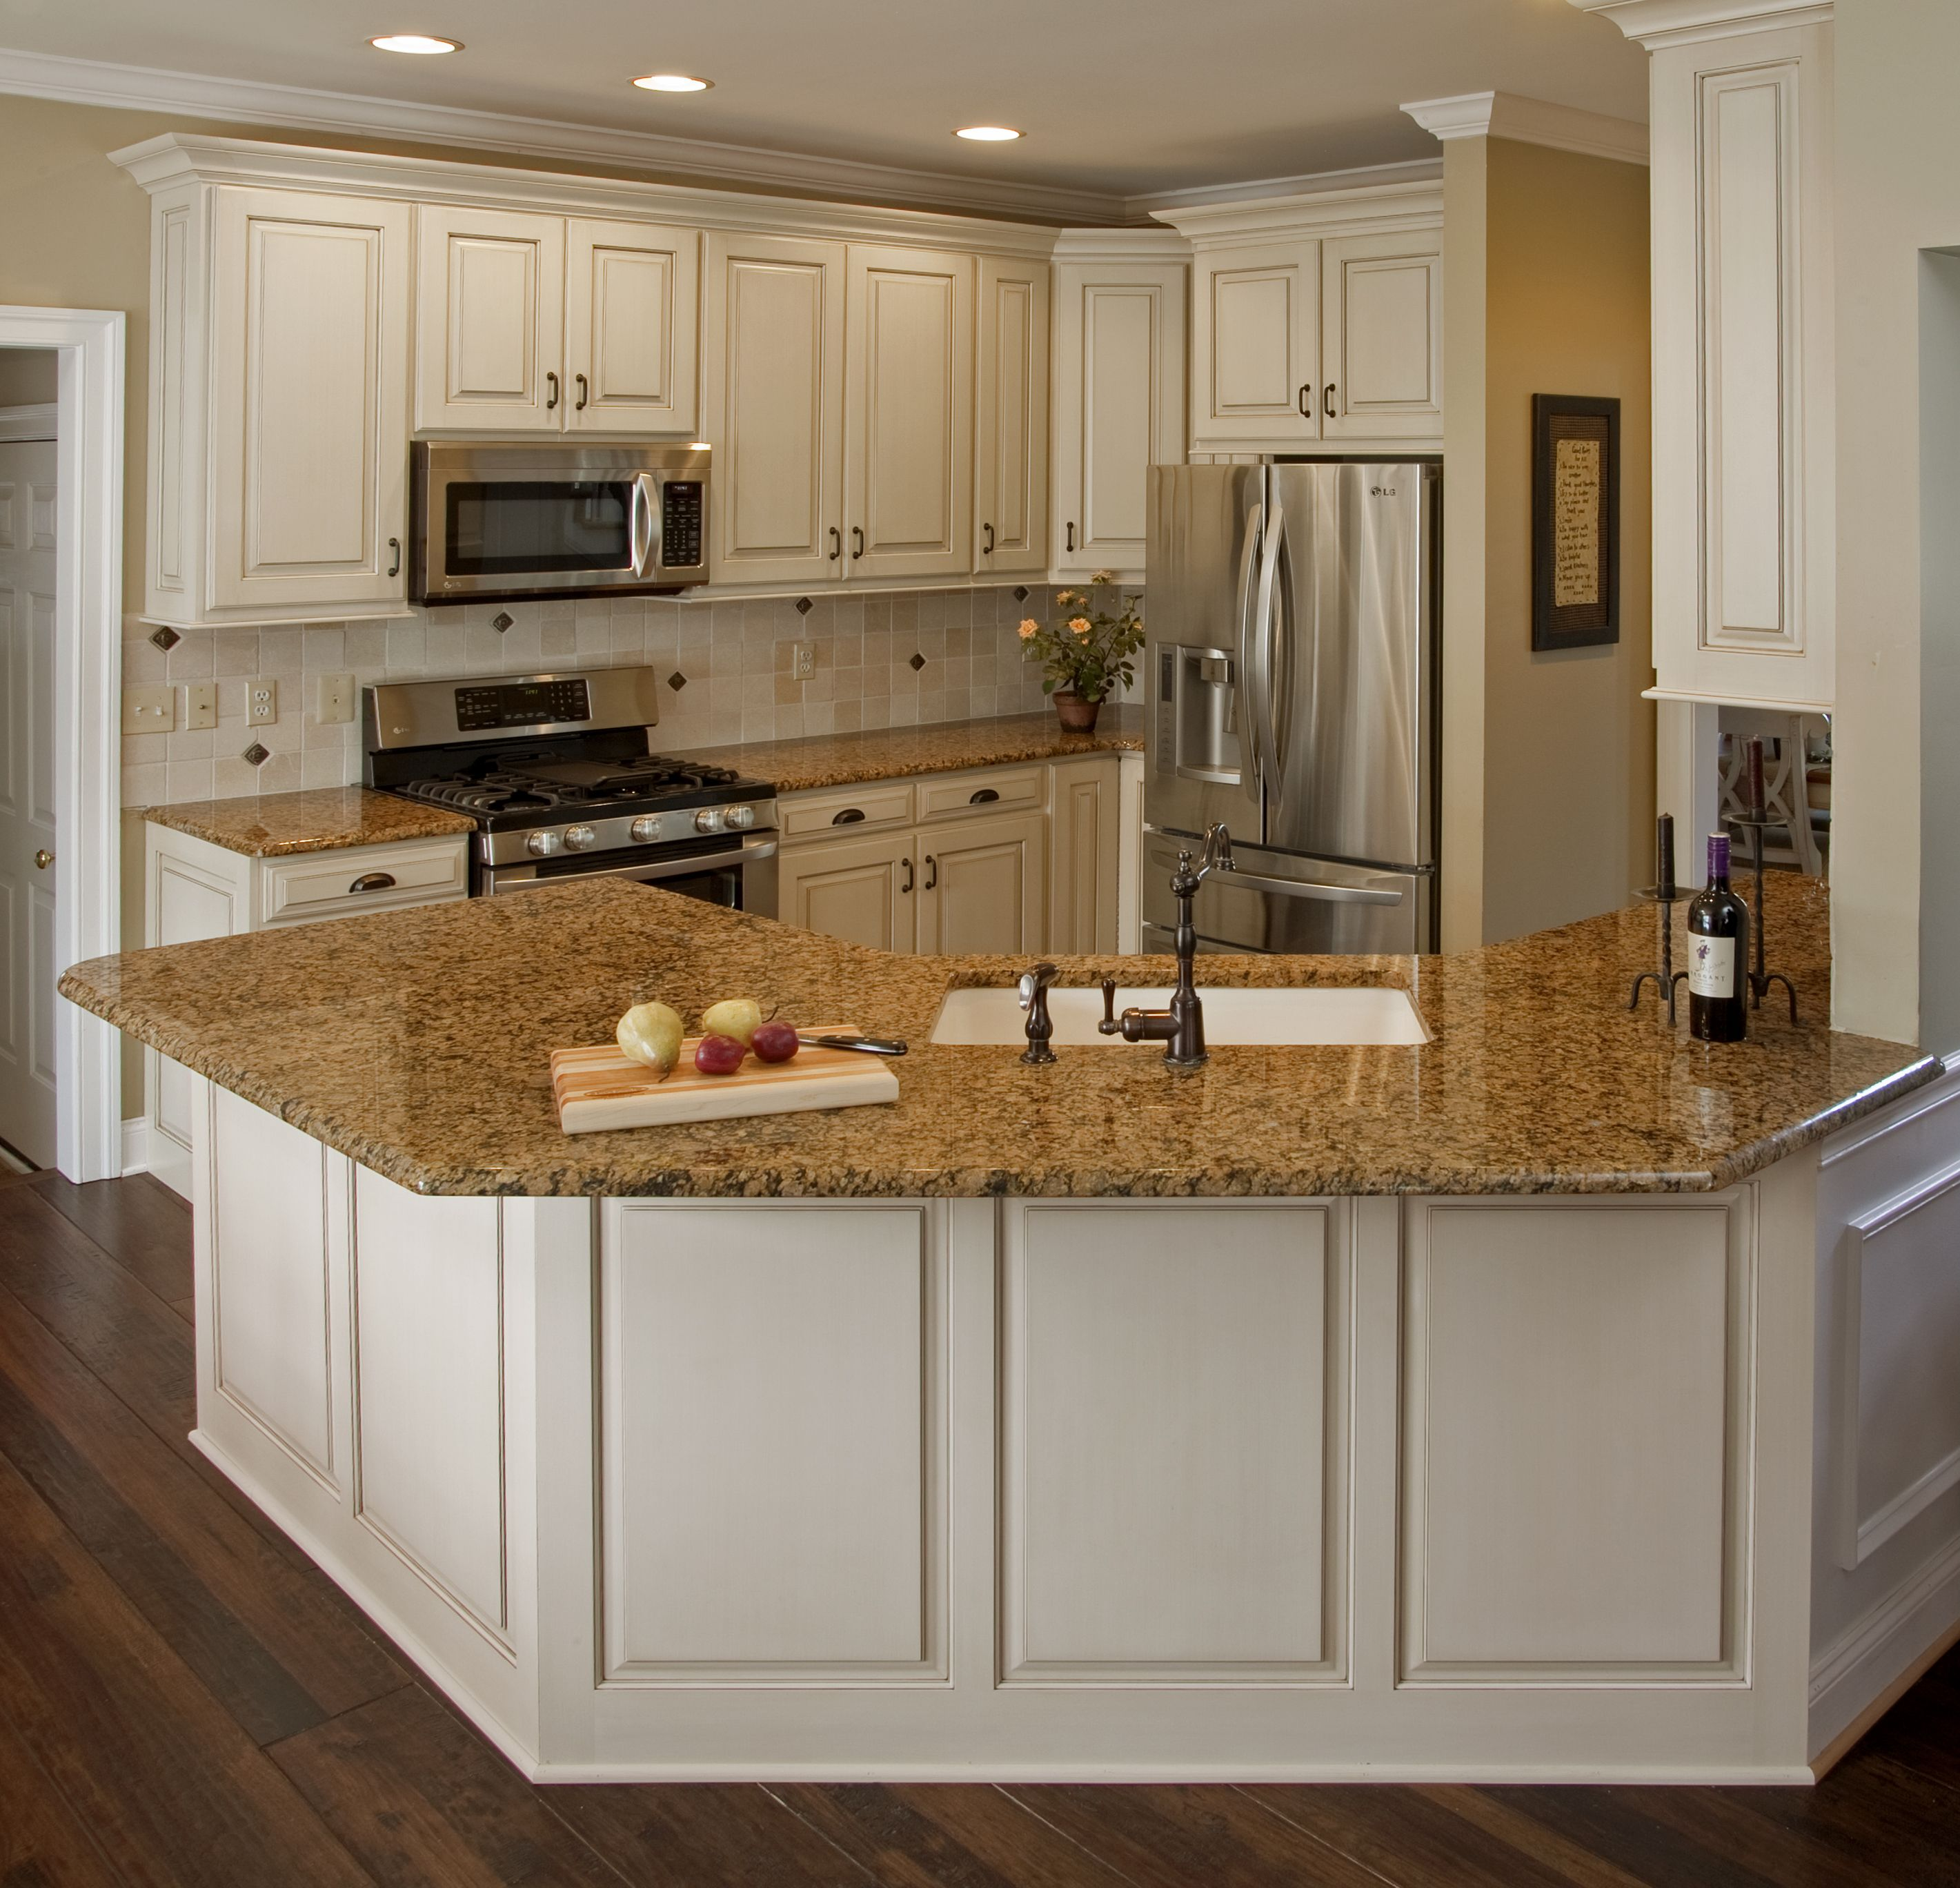 White Kitchen Cabinets Refinishing: Home And Garden Design Idea's